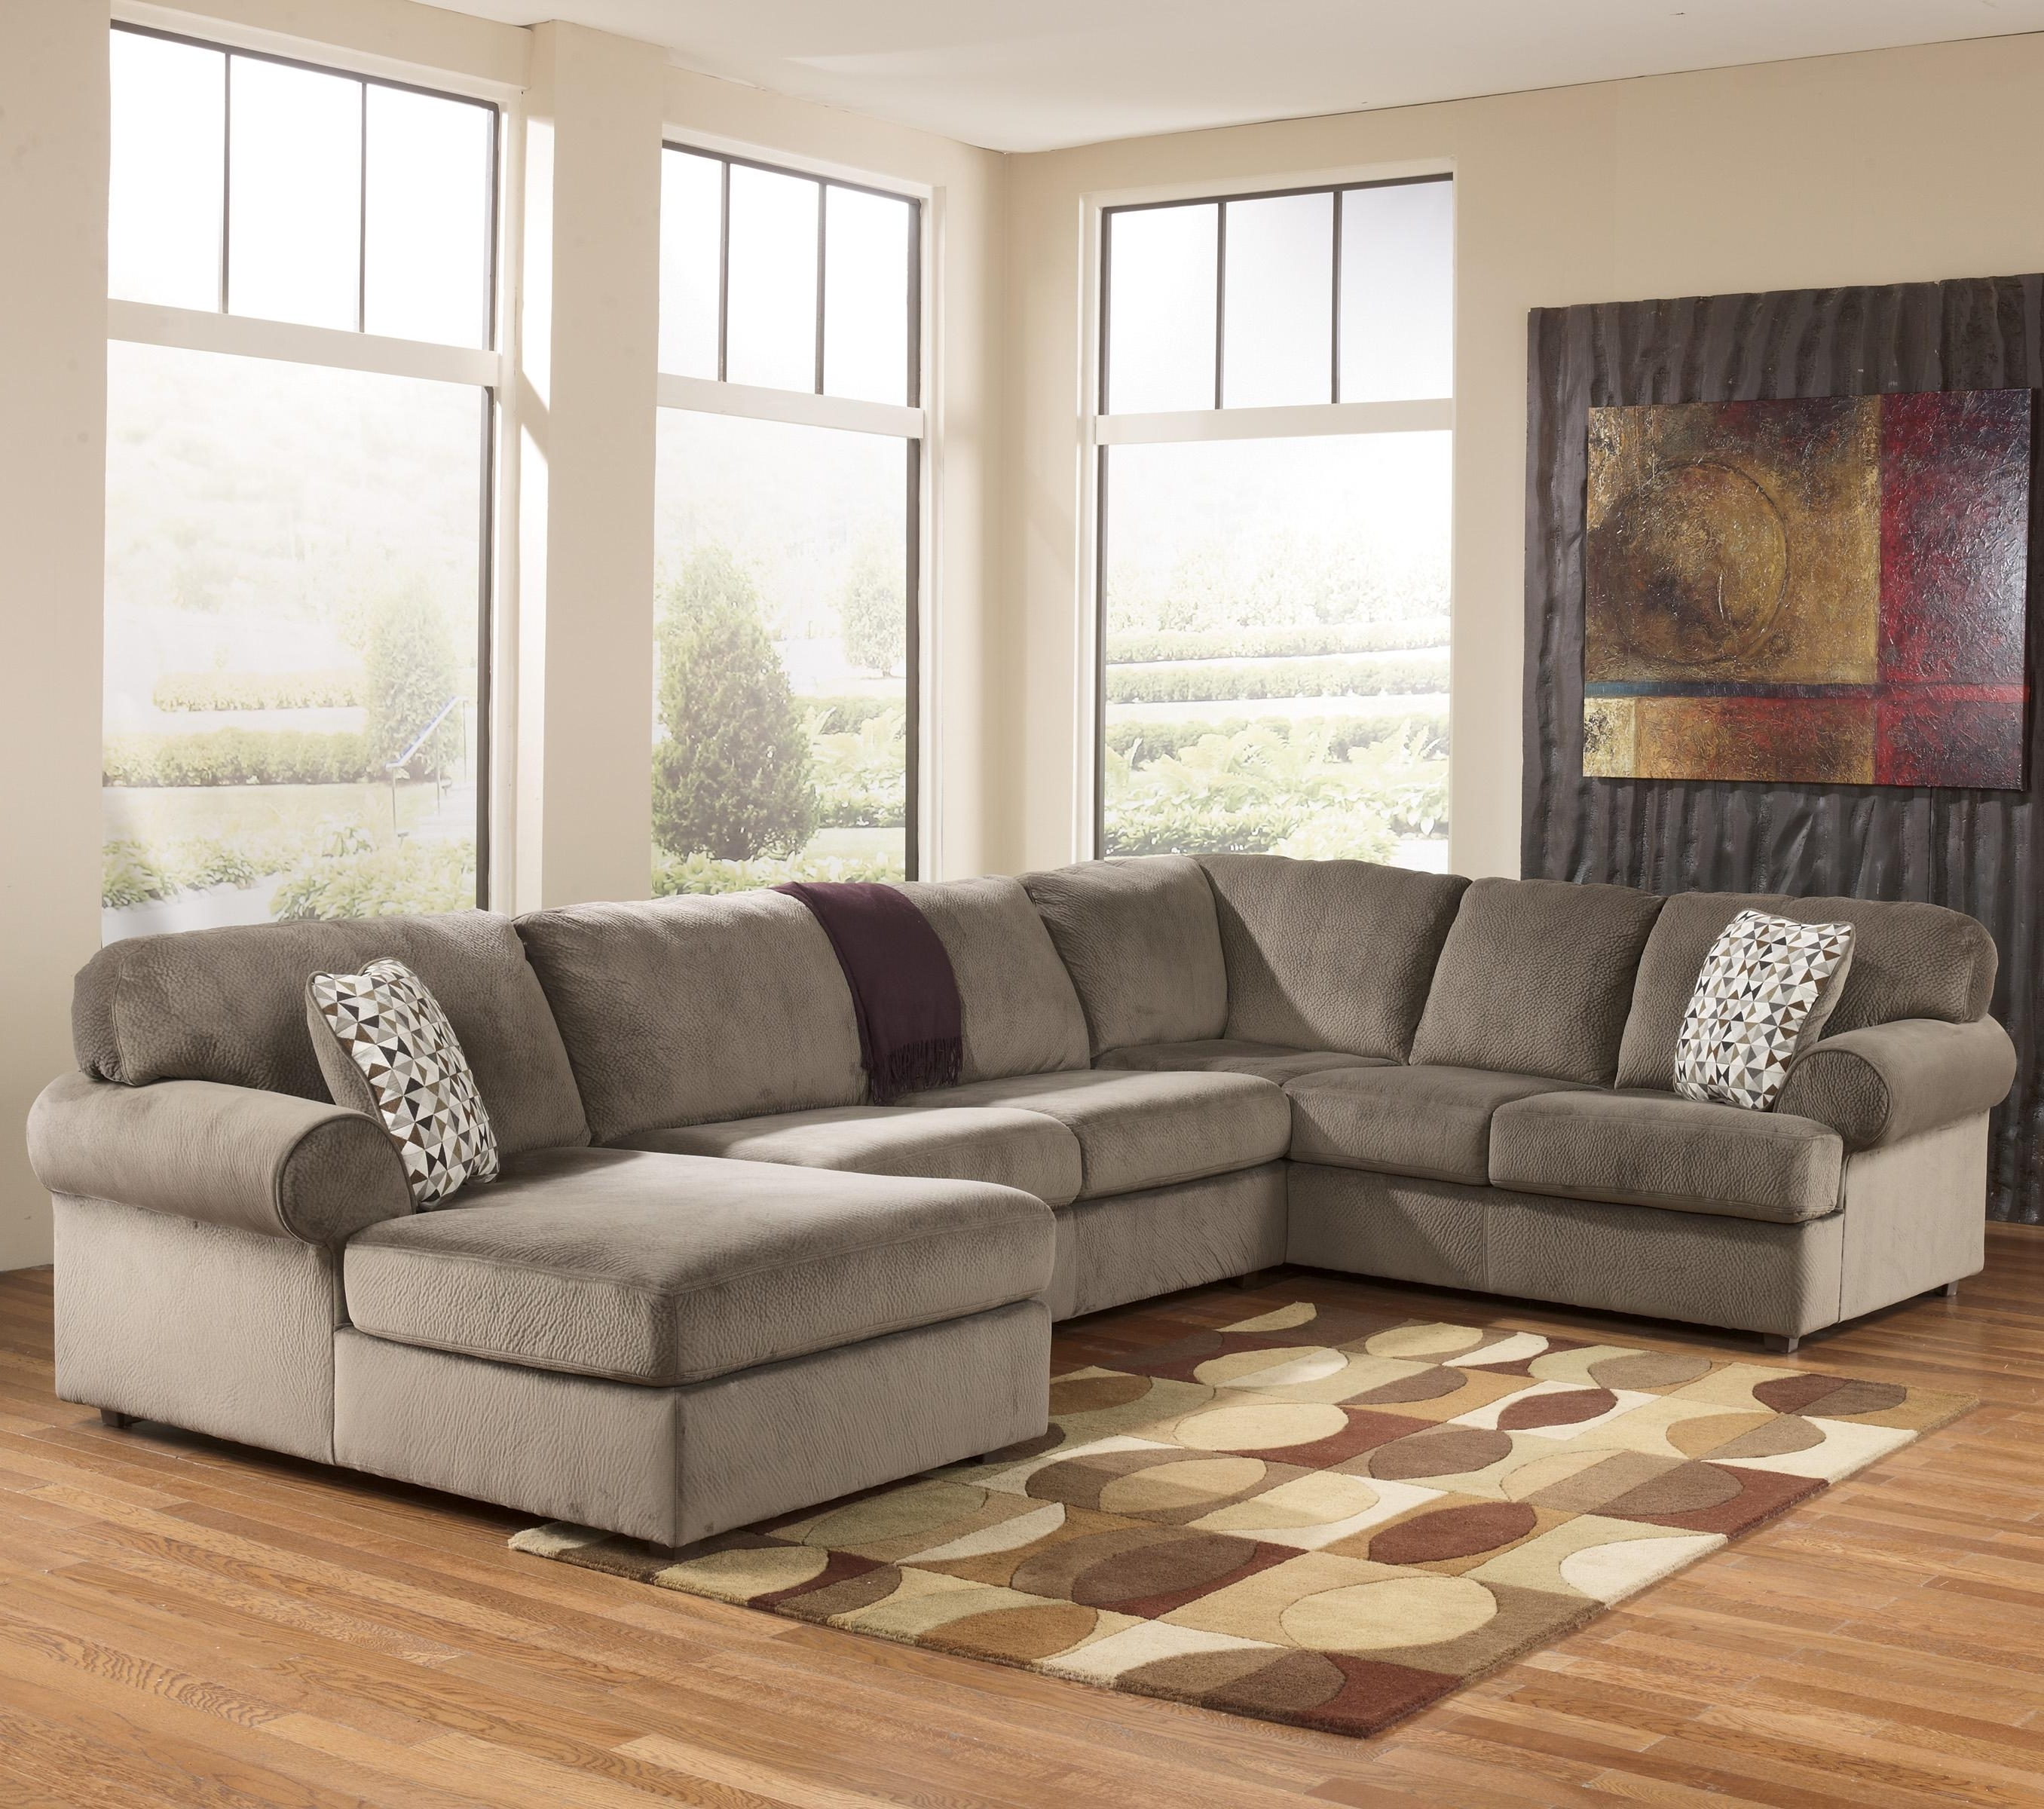 Trendy Signature Designashley Jessa Place – Dune Casual Sectional Inside Jacksonville Nc Sectional Sofas (View 14 of 15)